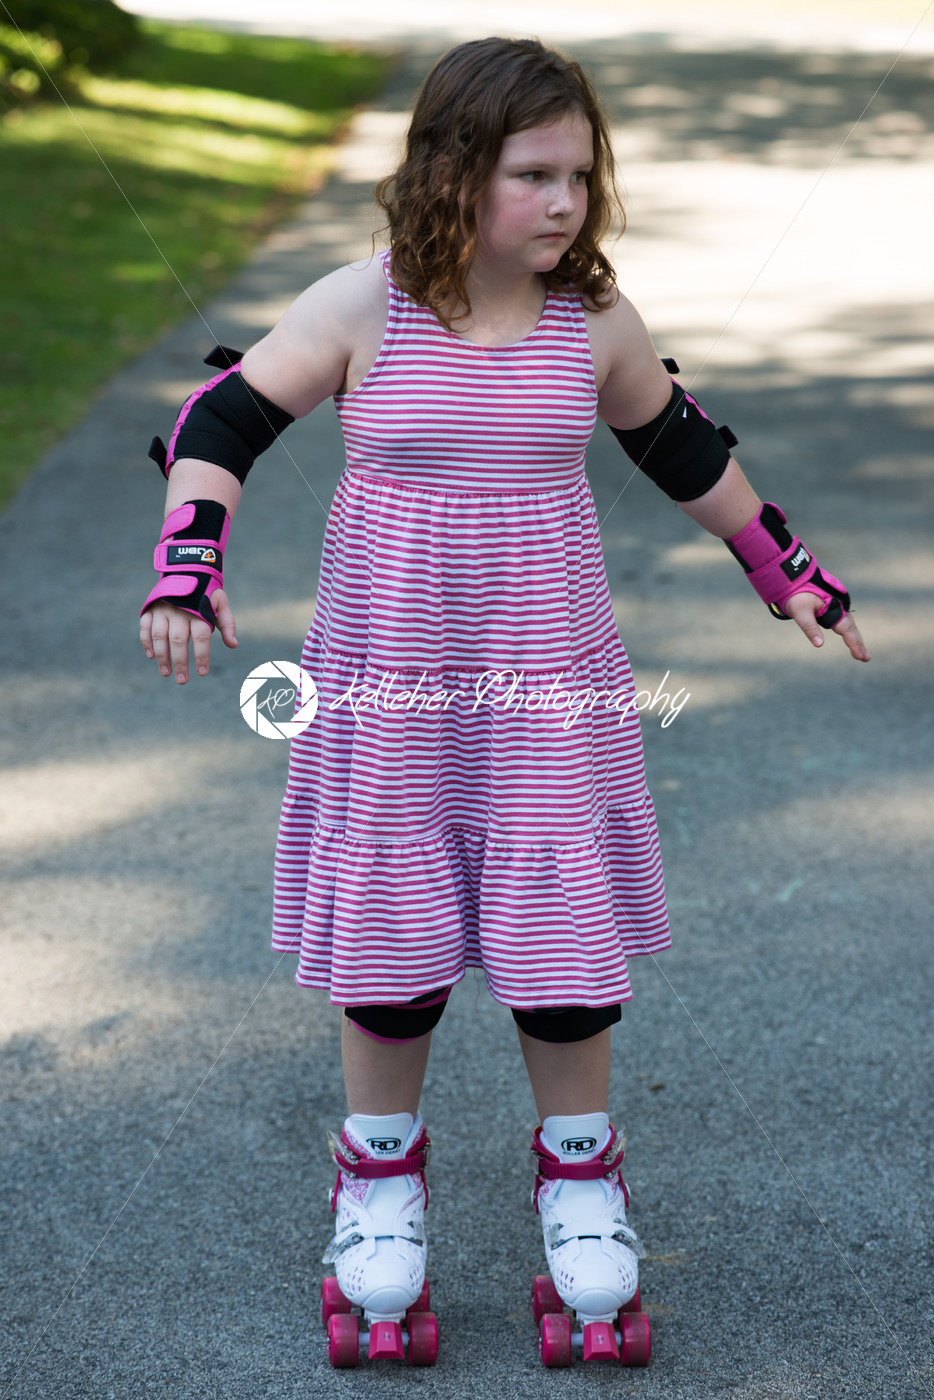 young girl outside learning to riding on roller skates on